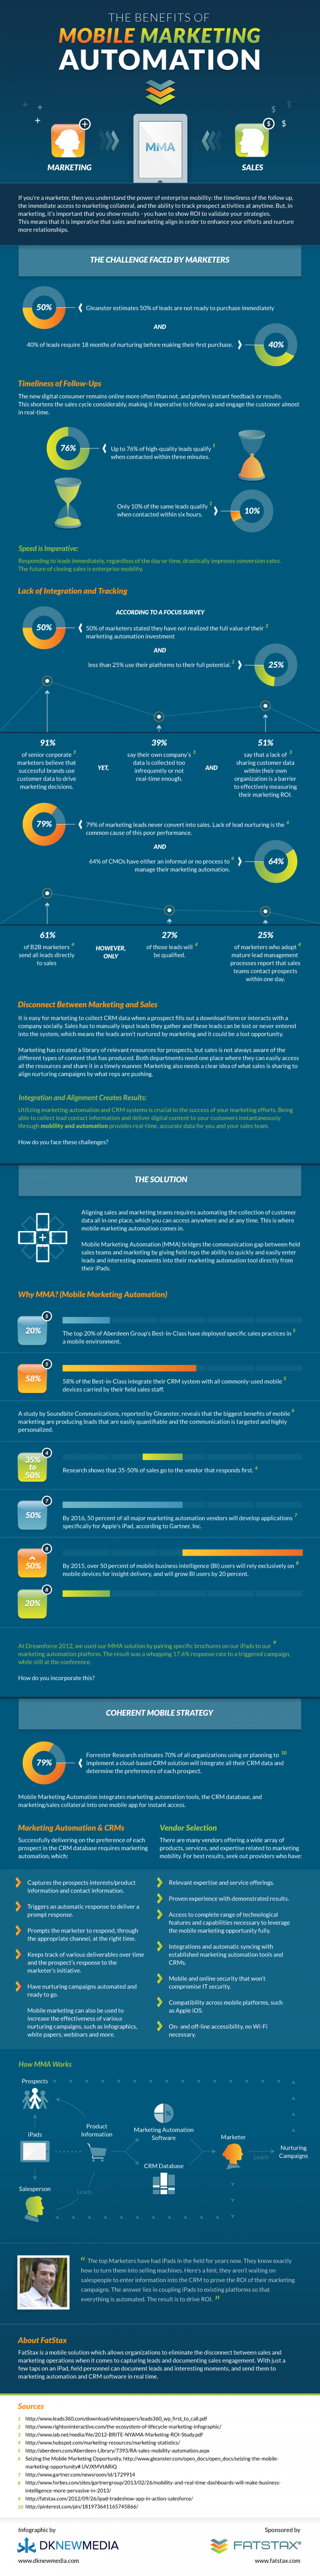 Benefits of Mobile Marketing Automation Infographic